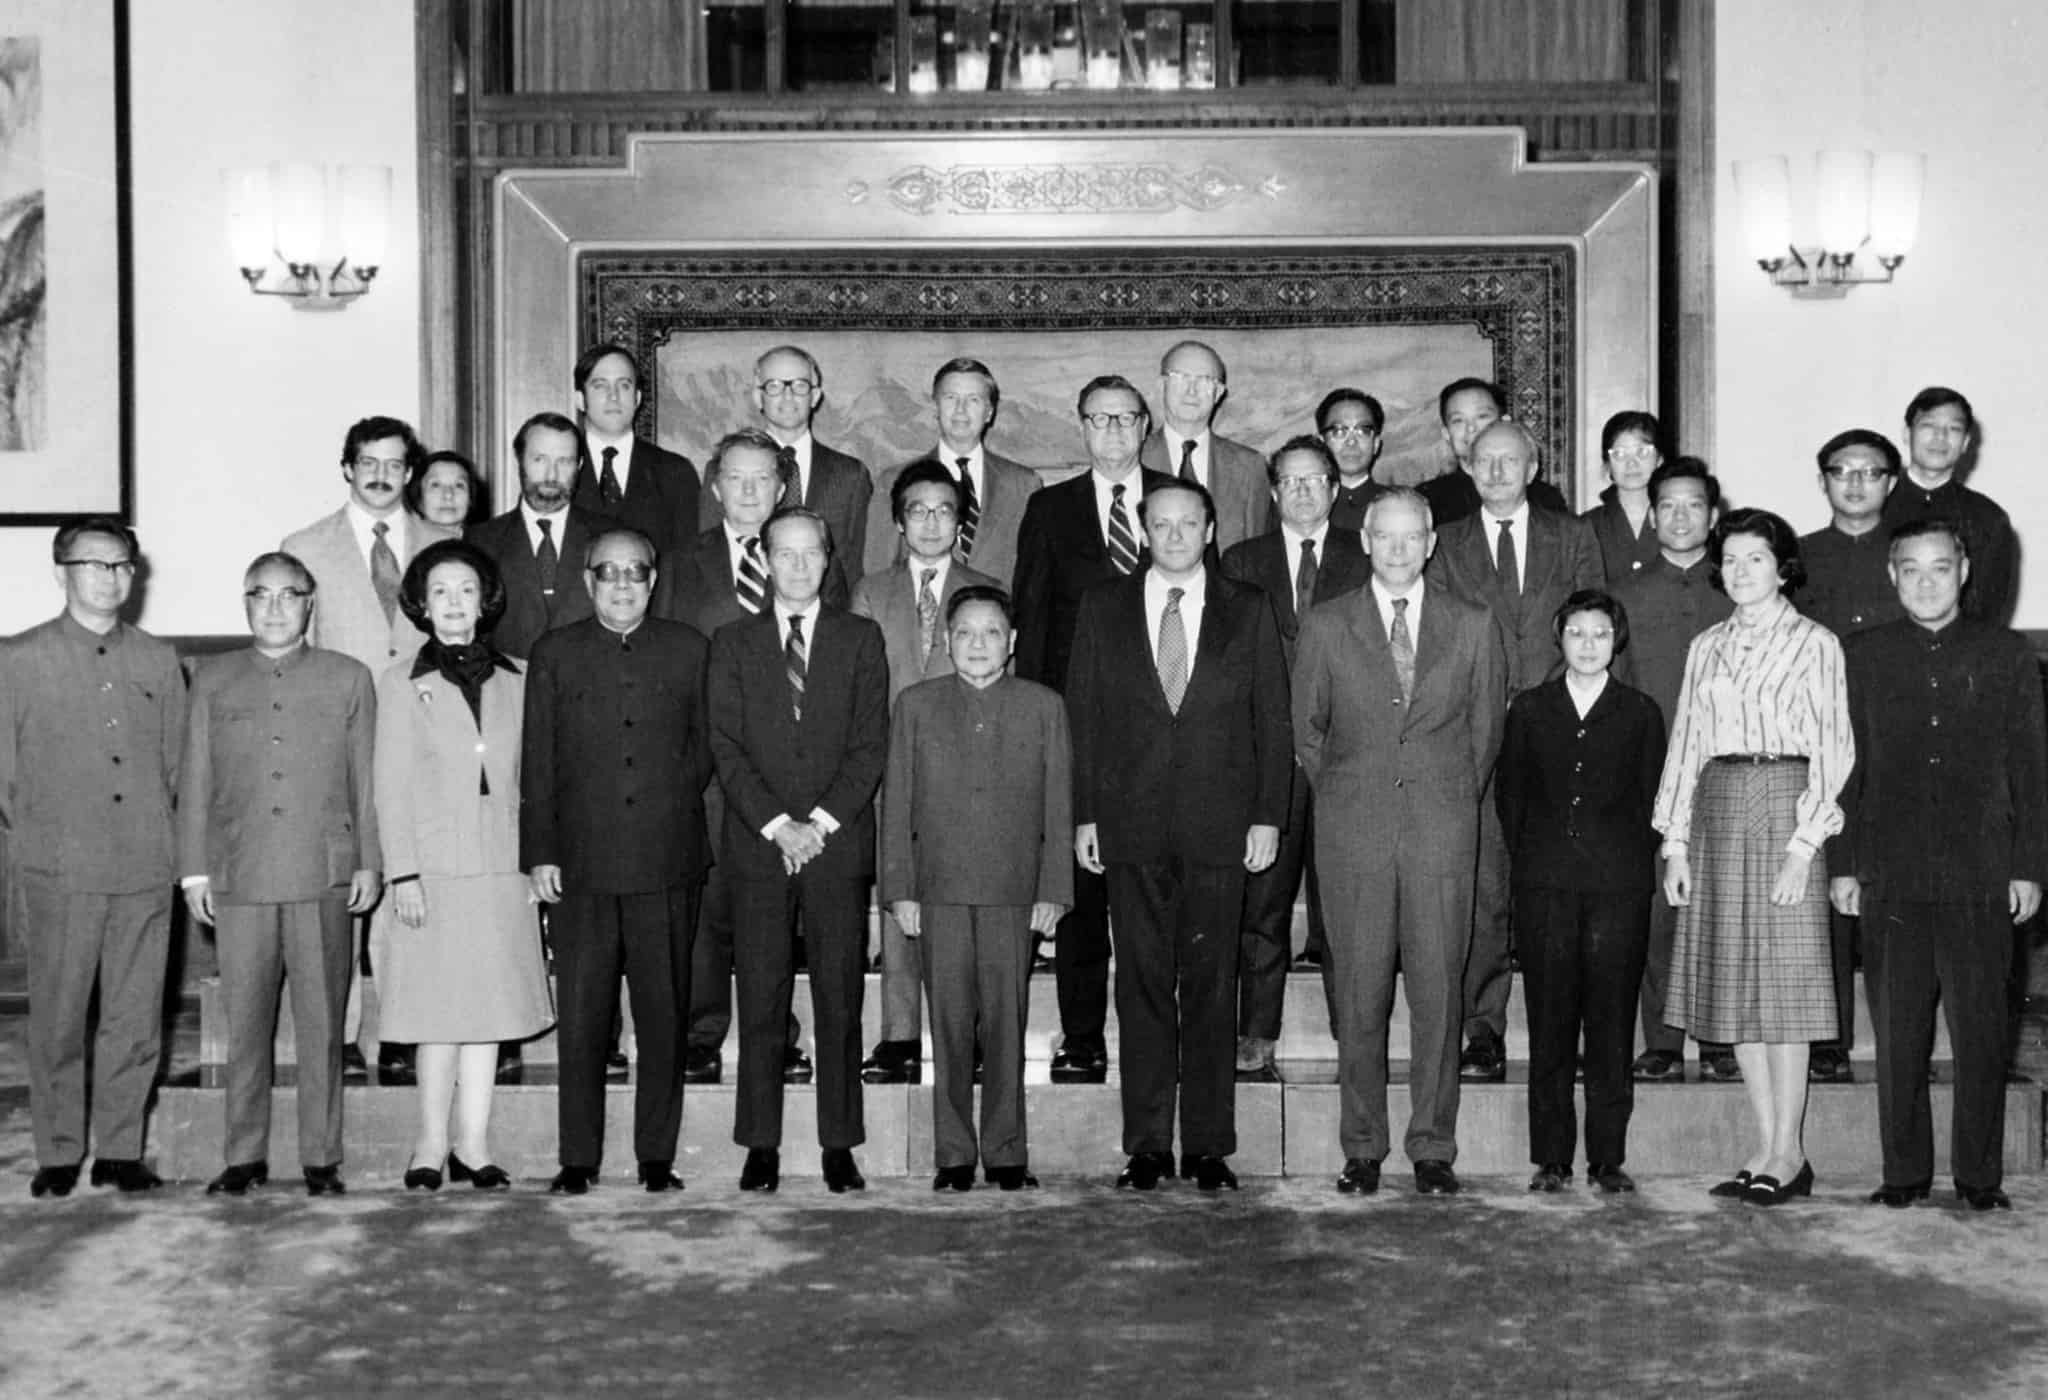 Deng Xiaoping with Chou Wen-chung and members of the National Committee on U.S.-China Relations.